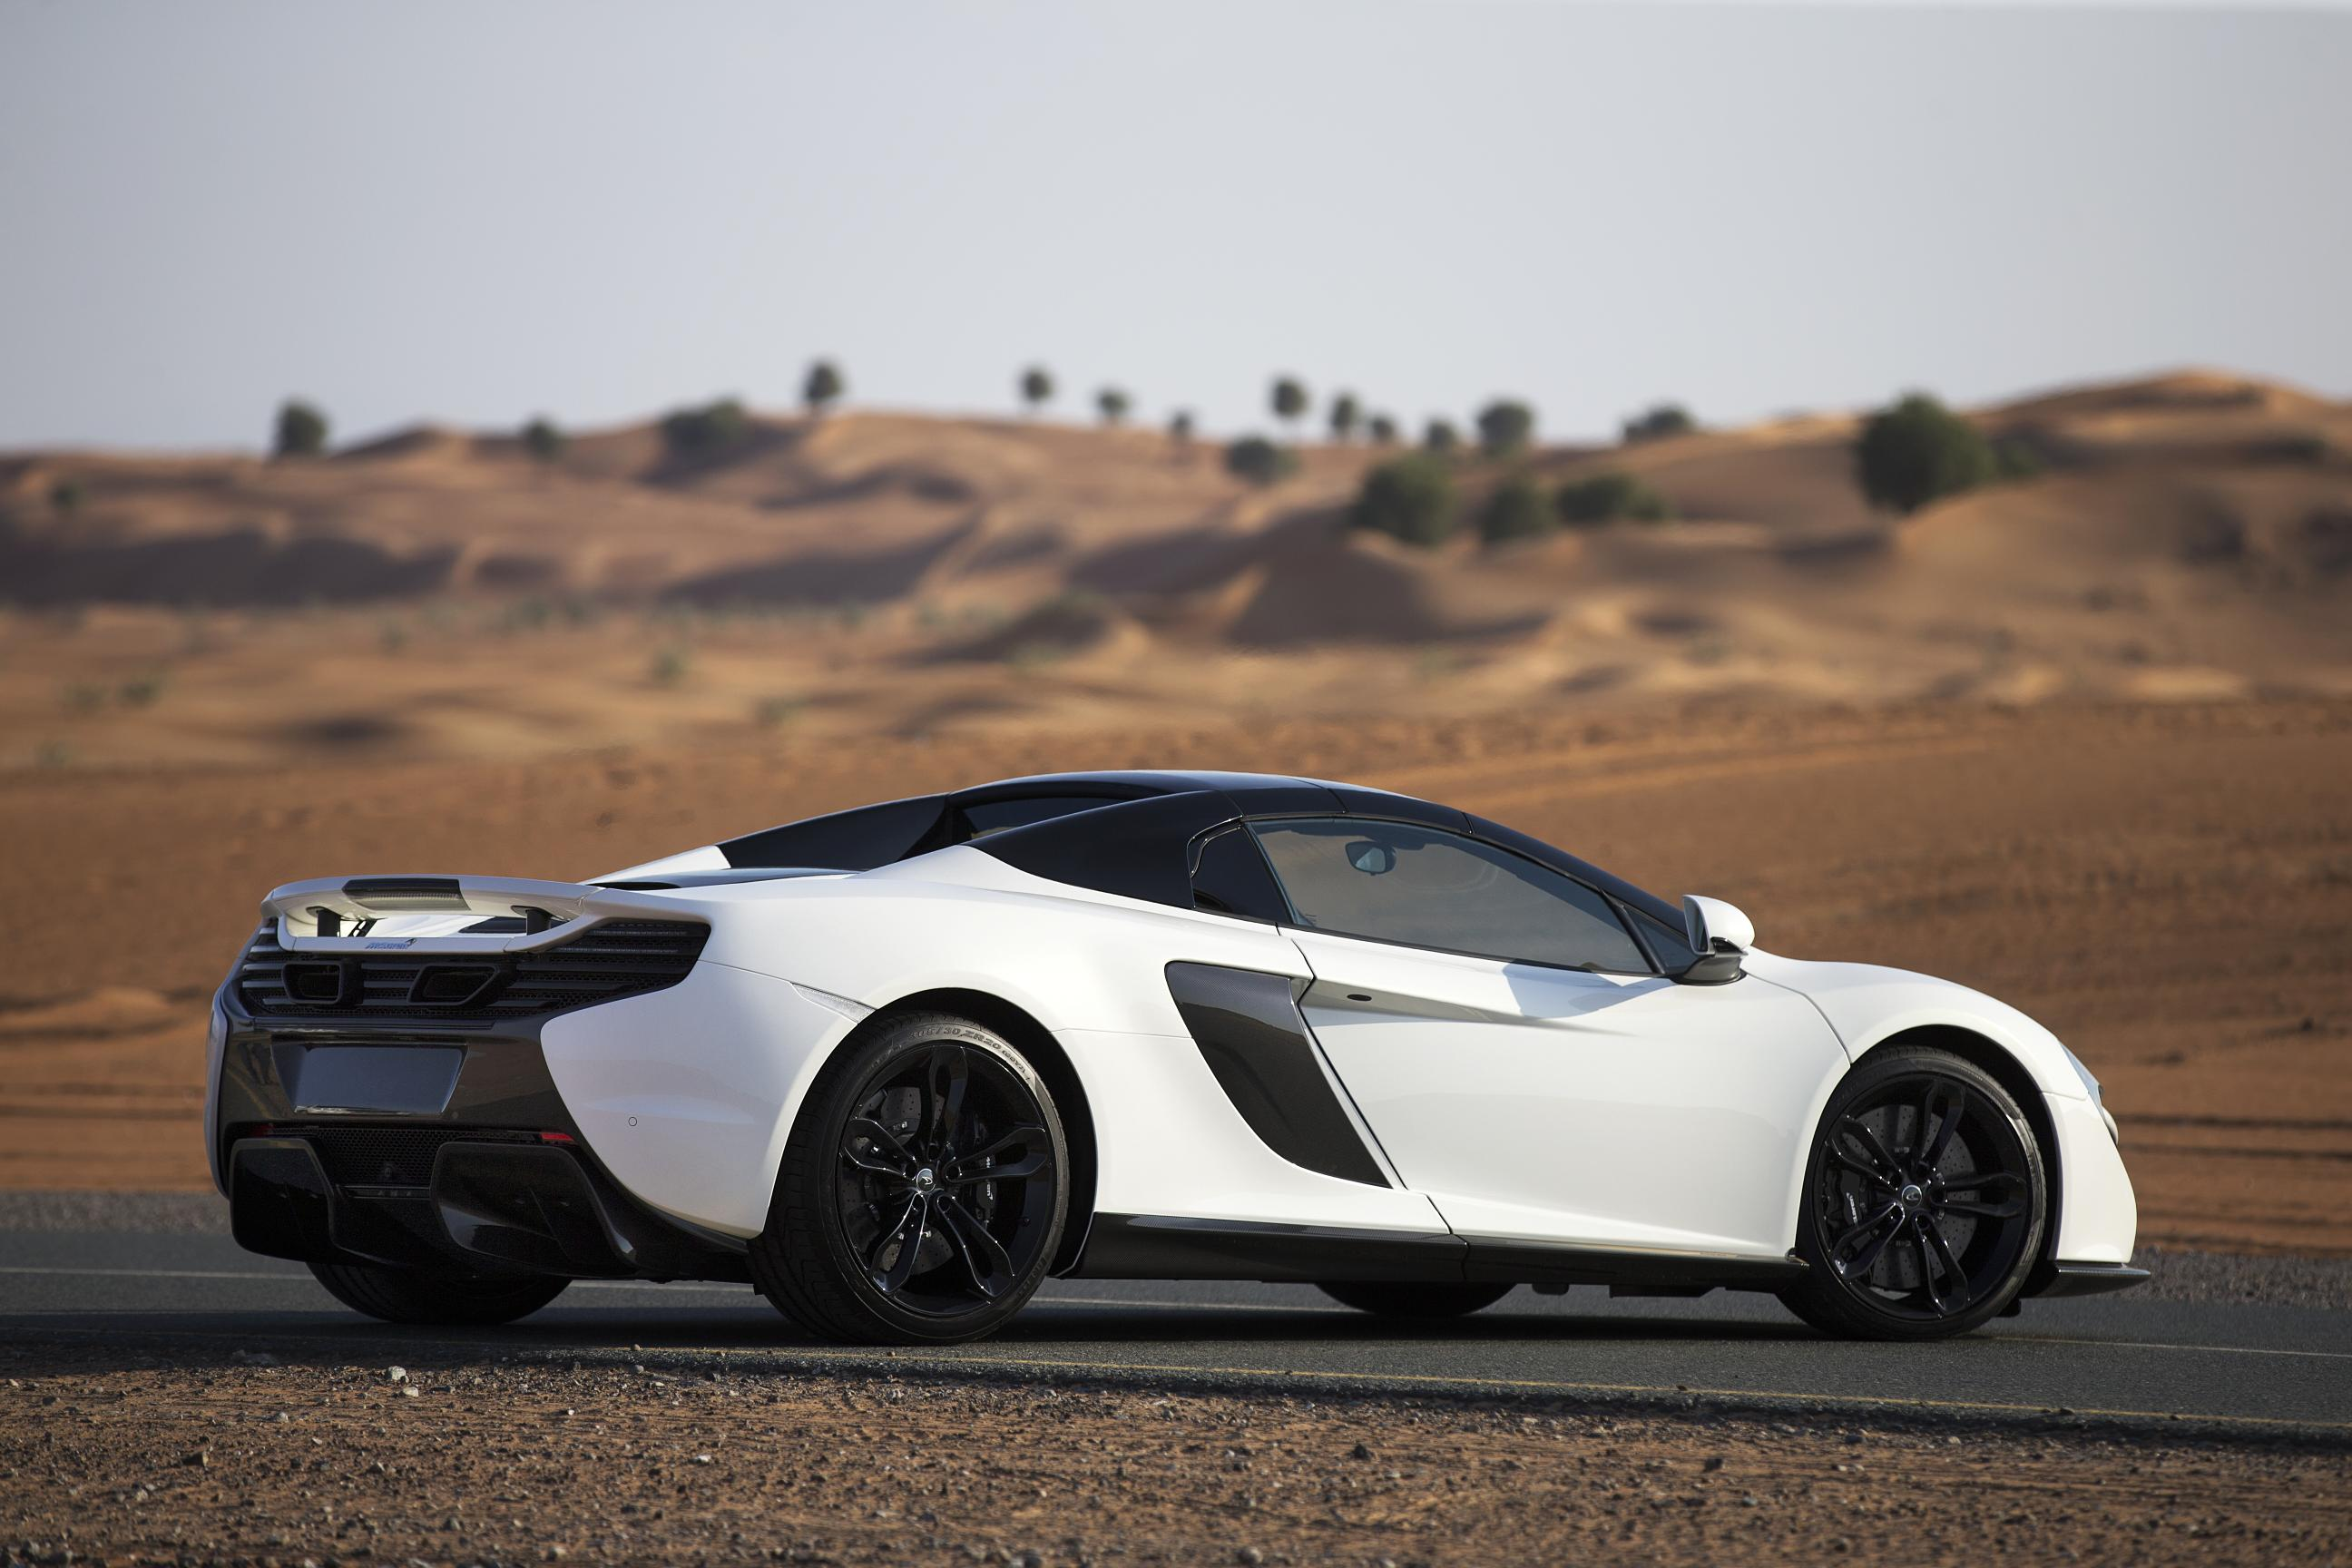 https://s1.cdn.autoevolution.com/images/news/mclaren-650s-spider-al-sahara-79-by-mso-is-a-lesson-in-bespoke-craftsmanship-photo-gallery-101899_1.jpg